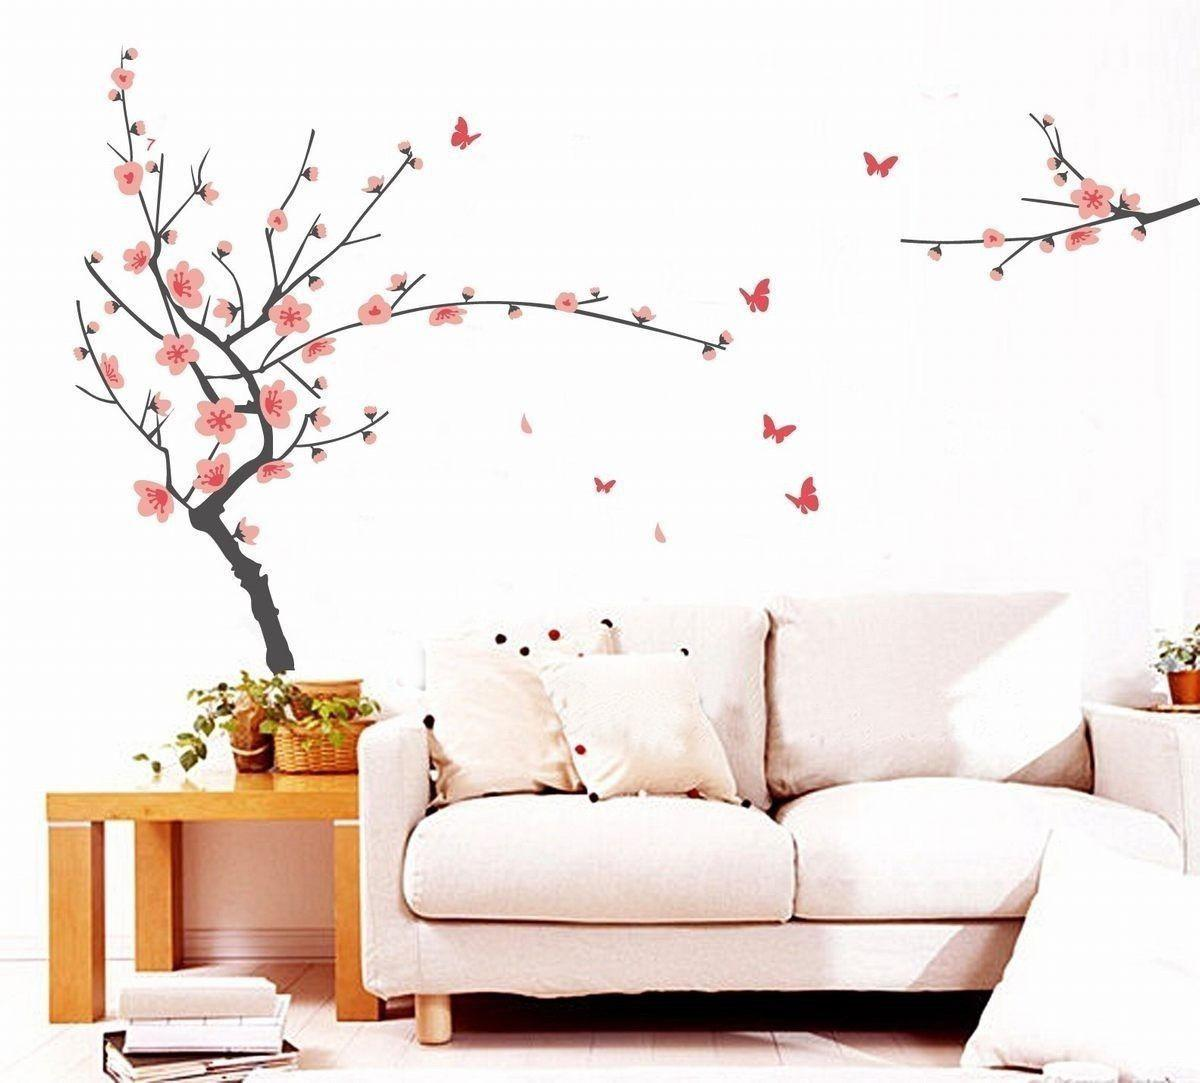 Wall Art Decor Mural Desprendible Pegatina Decal PVC Cherry Blossom Ciruelas ciruela